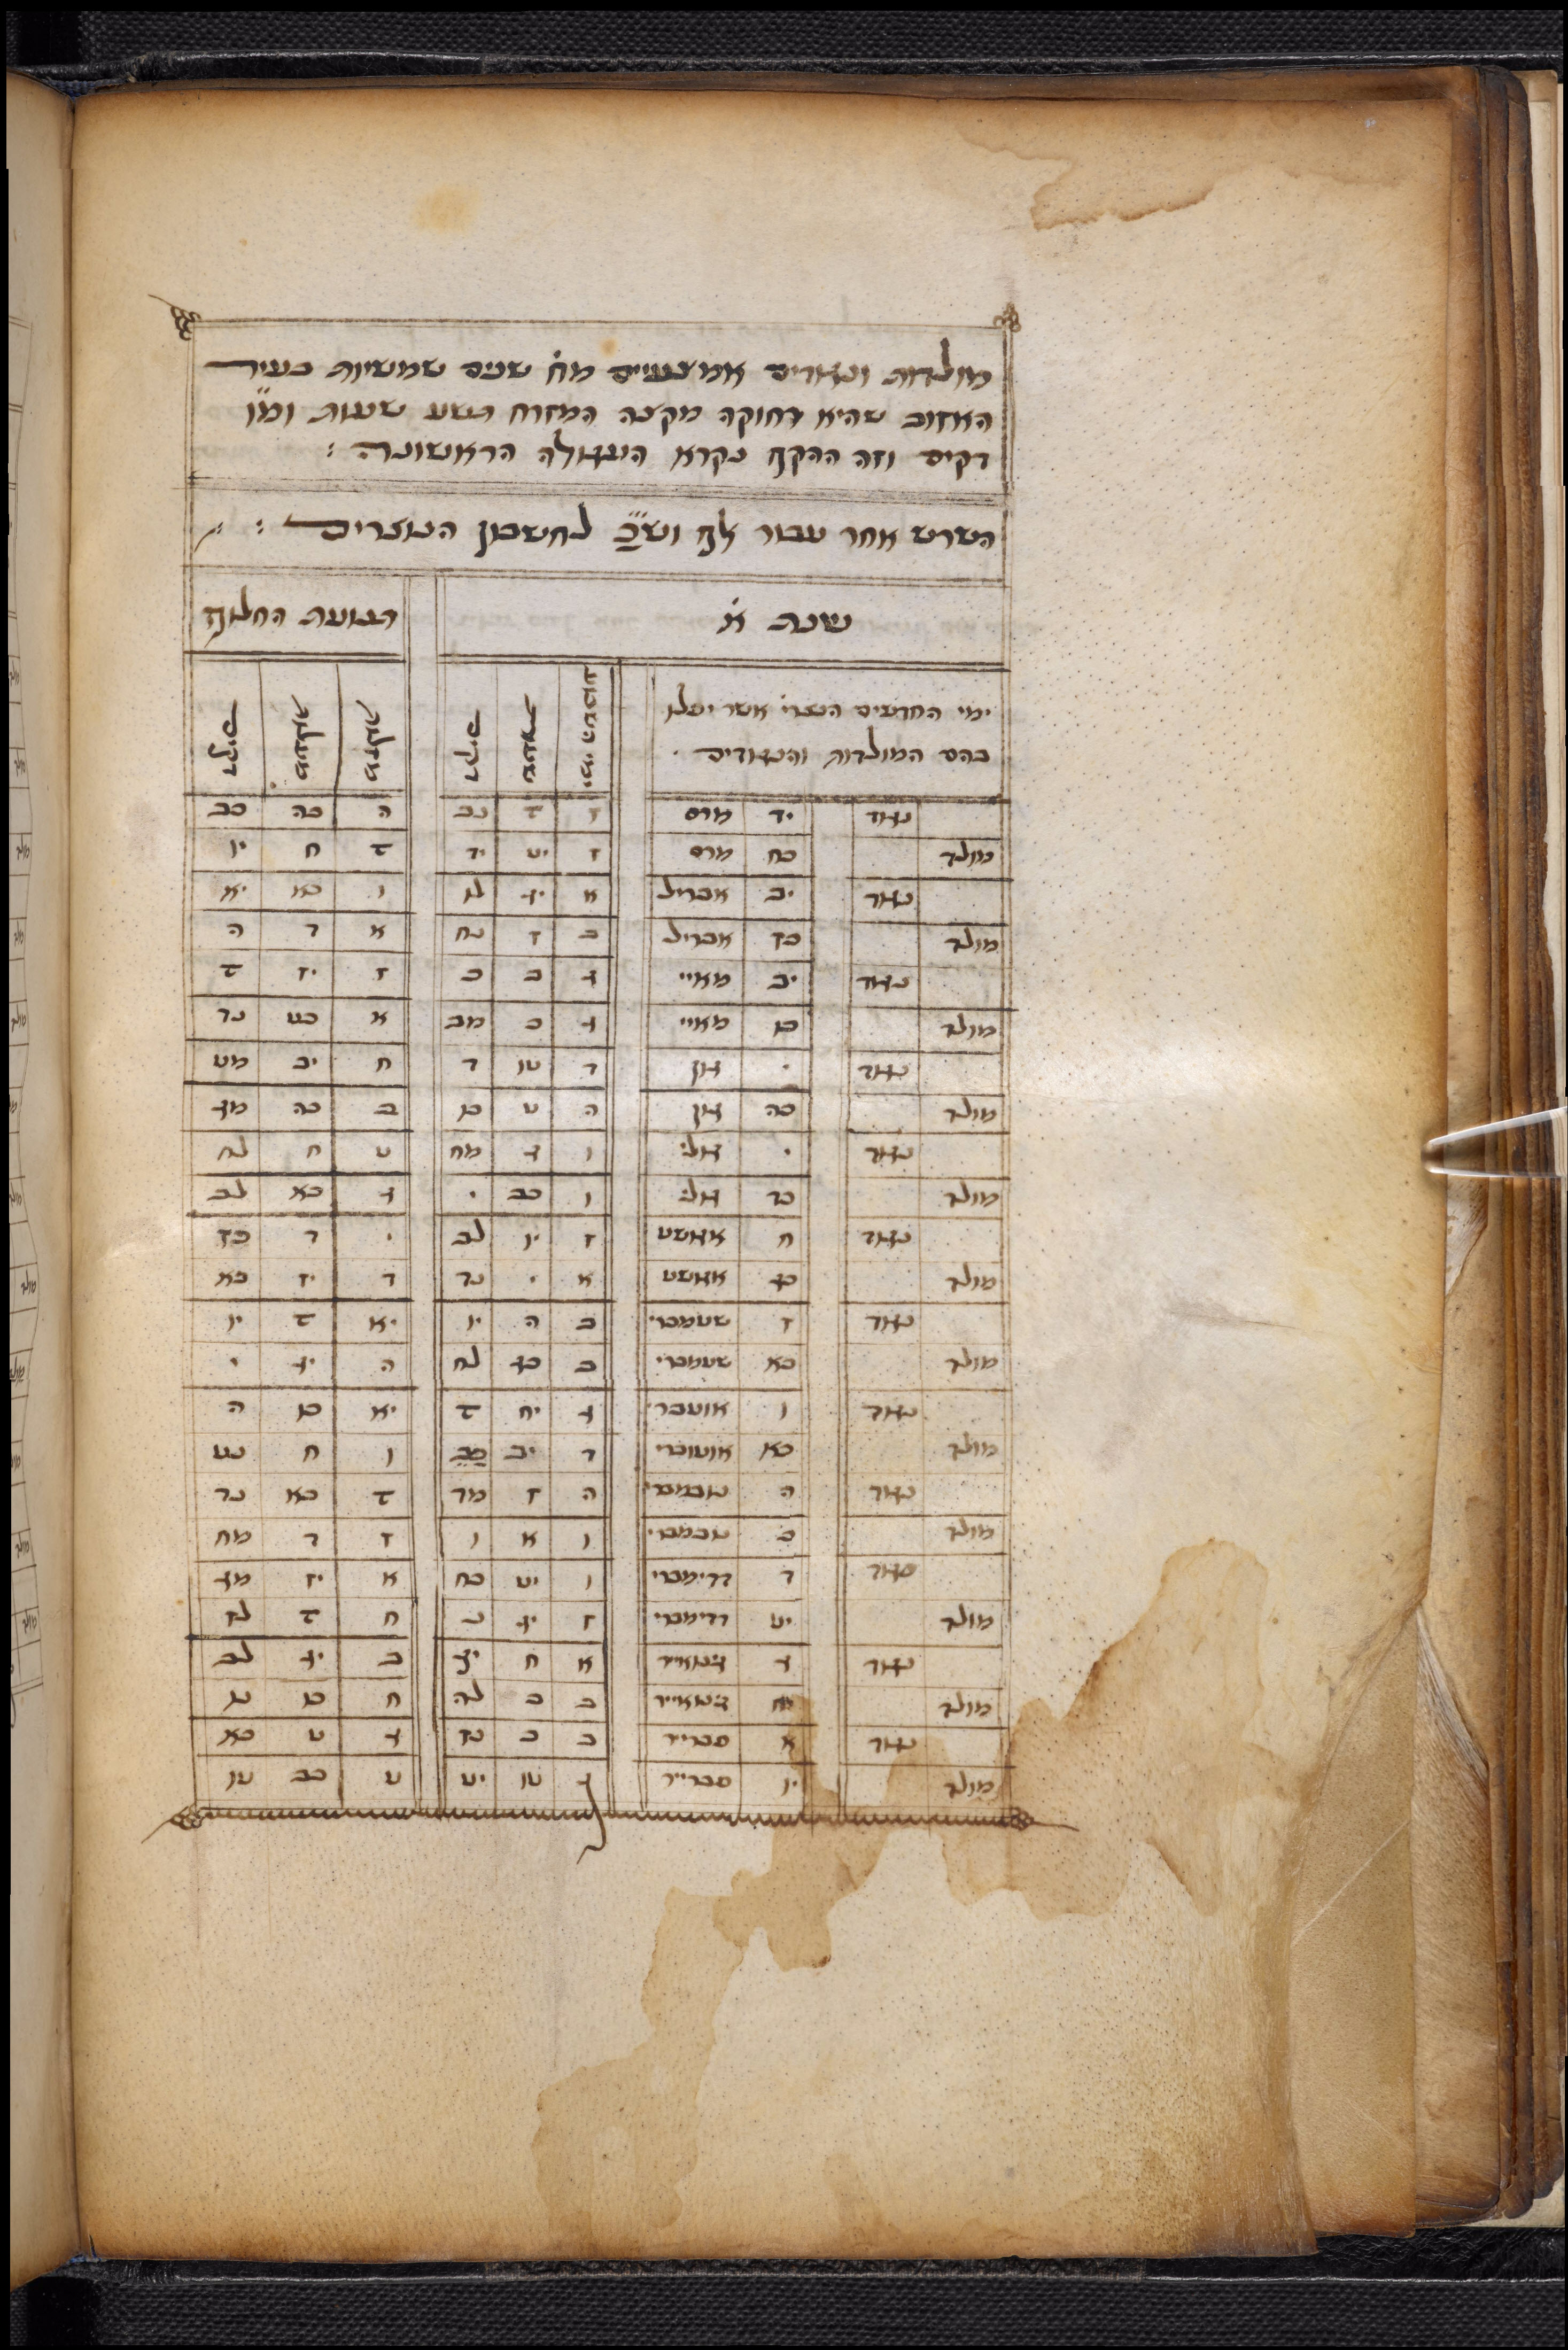 Milchamot Hashem Book V Part 1 - Manuscript British Museum Add. 26921, Folio 20v